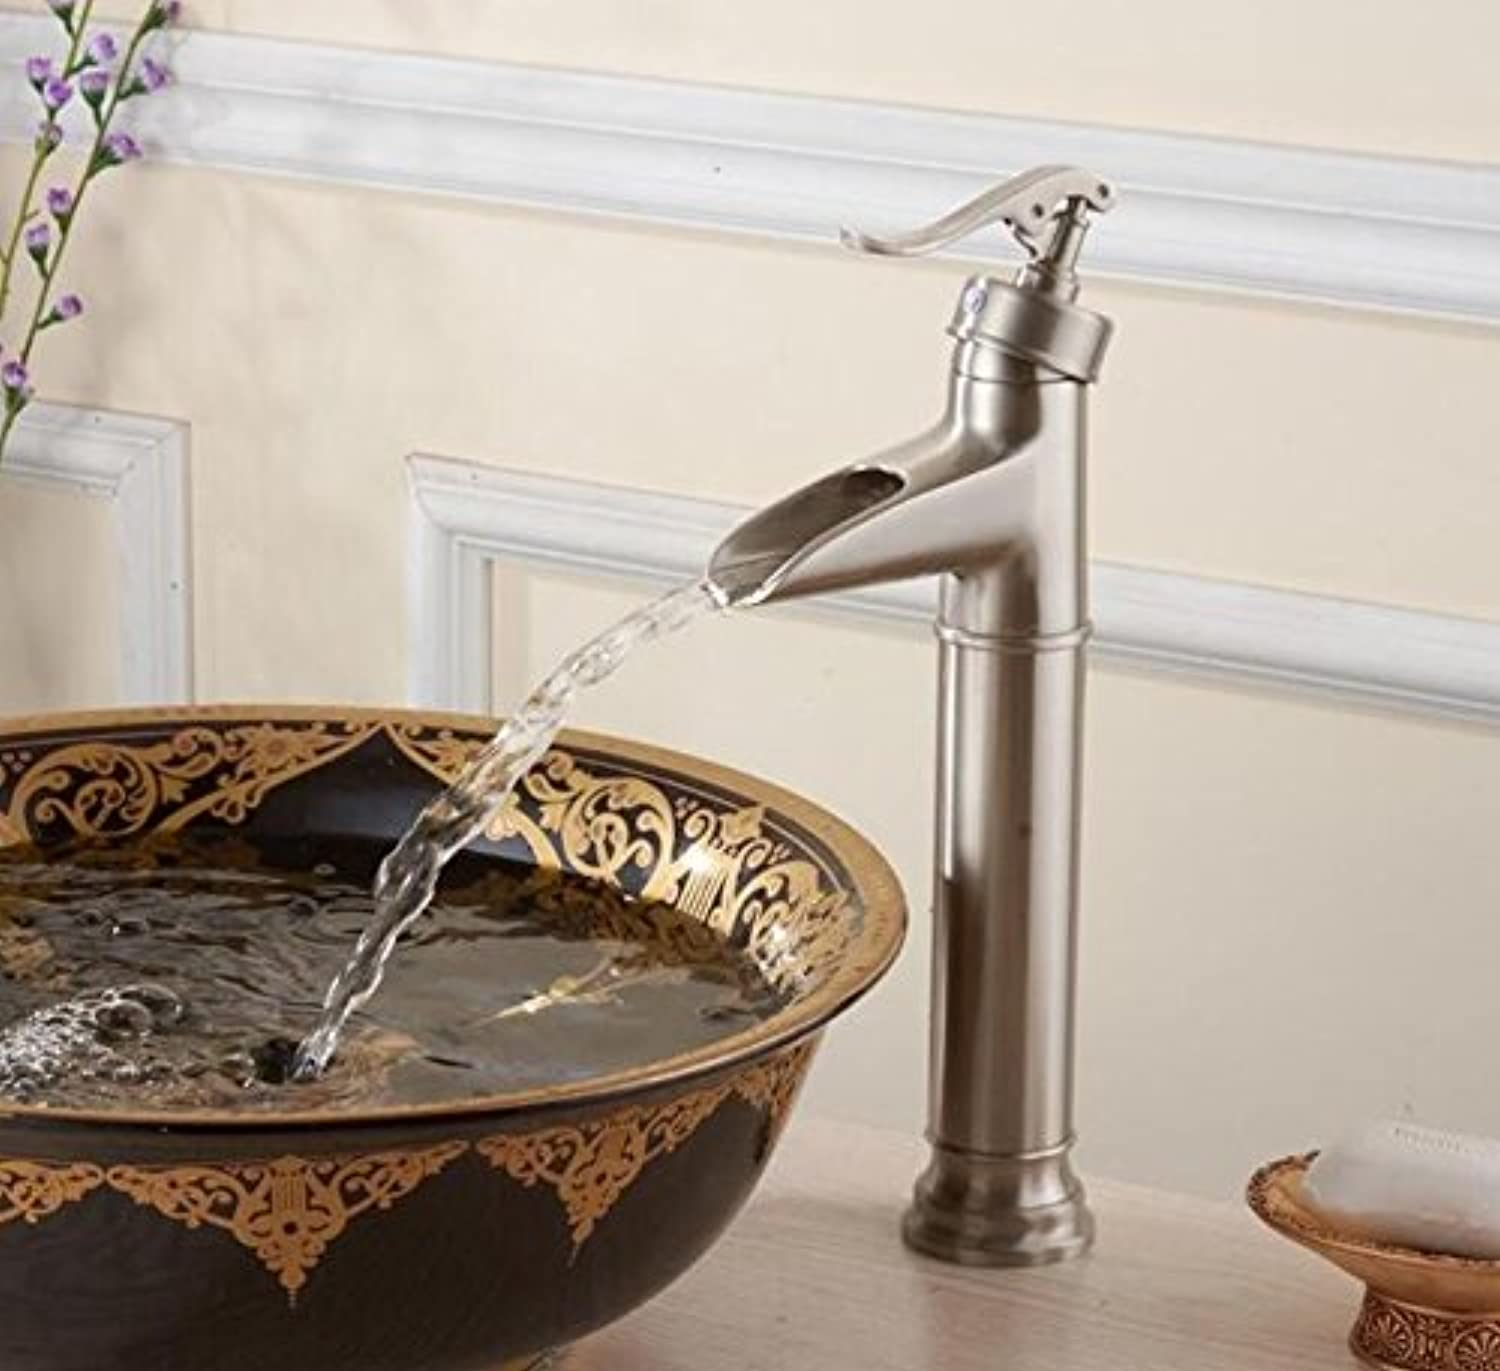 Mkkwp Bathroom Waterfall Nickel Brushed Single Hole Deck Mounted Mixer Taps Bathroom Hot and Cold Water Basin Faucets